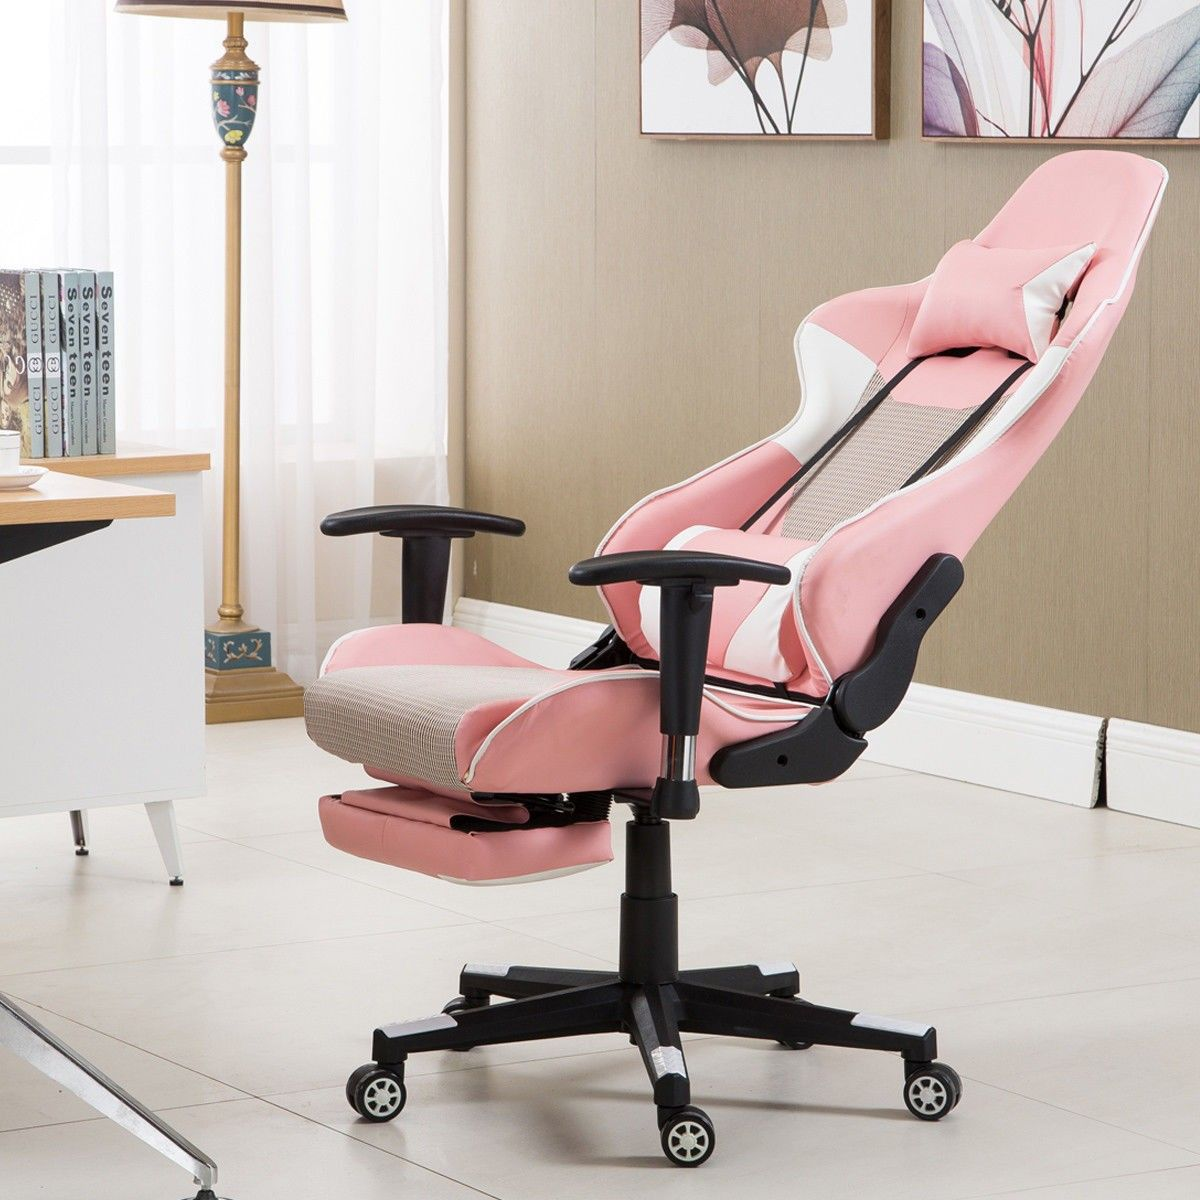 Pink High Back Gaming Racing Chair w/ Lumbar Support